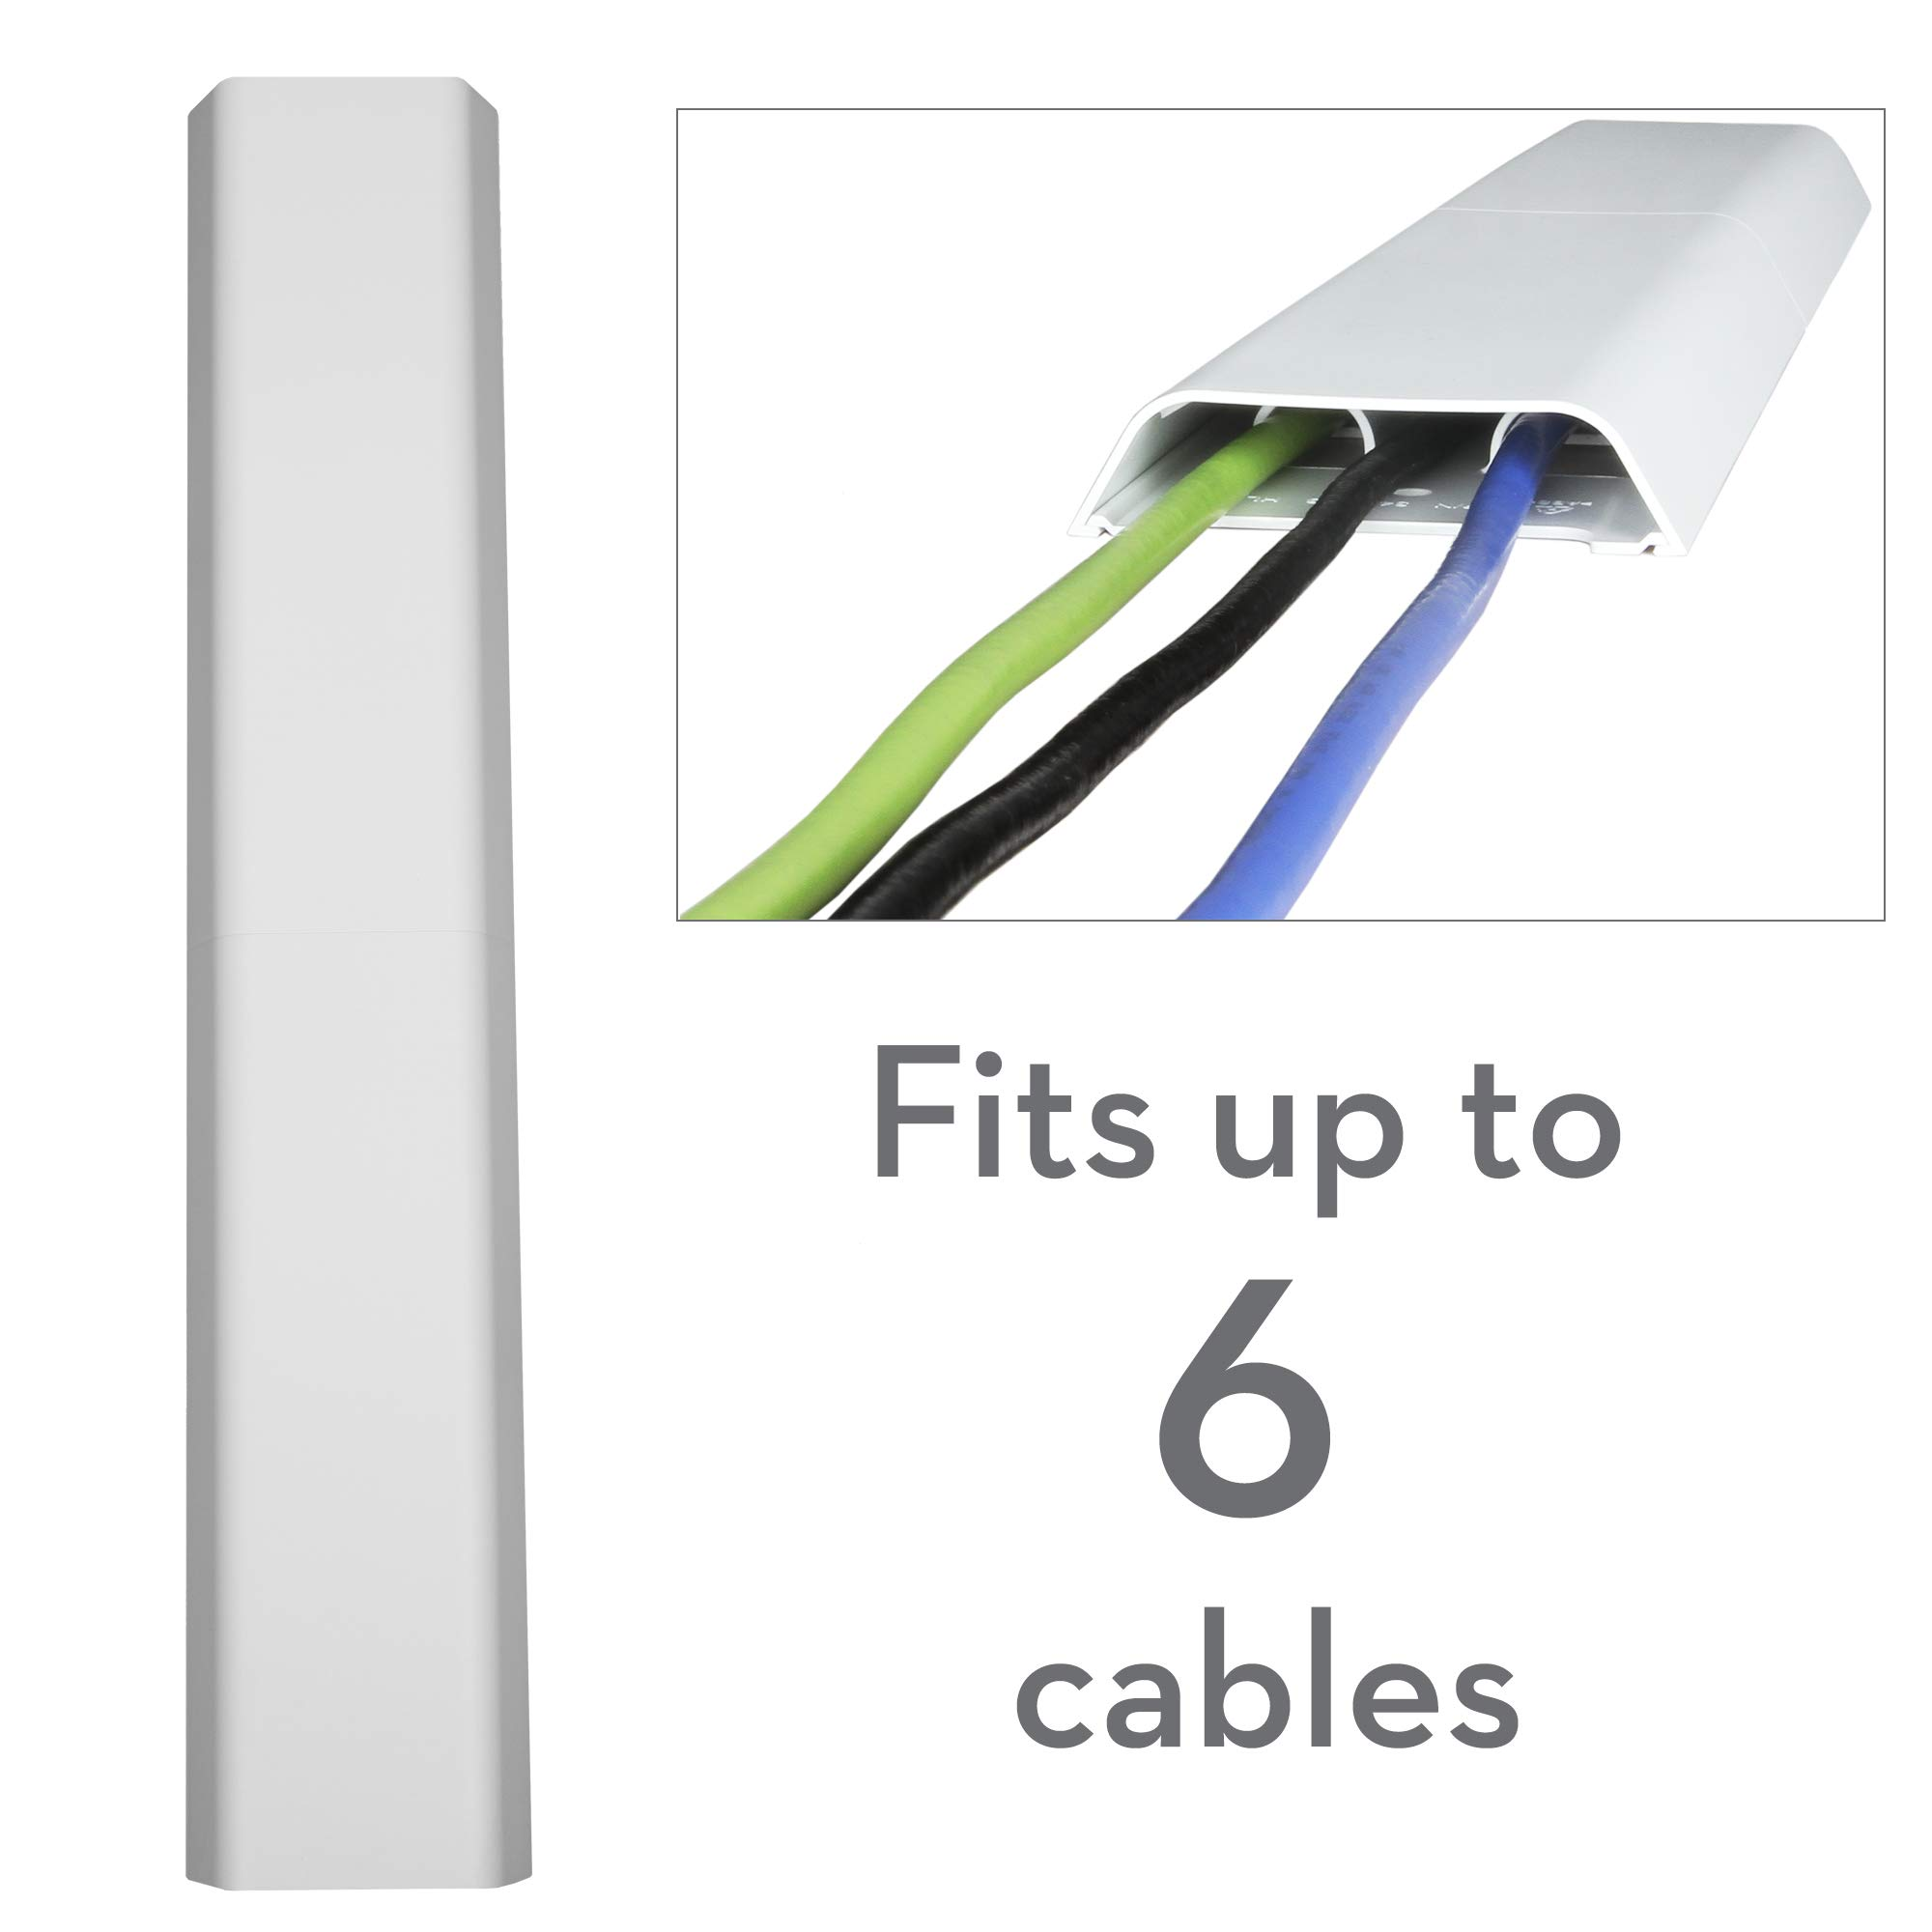 OmniMount OCM On-Wall Cable Management Covers, Paintable, Flat Design to Conceal up to 6 Cables, Set of Three, 3.25'' x 18'' Inches